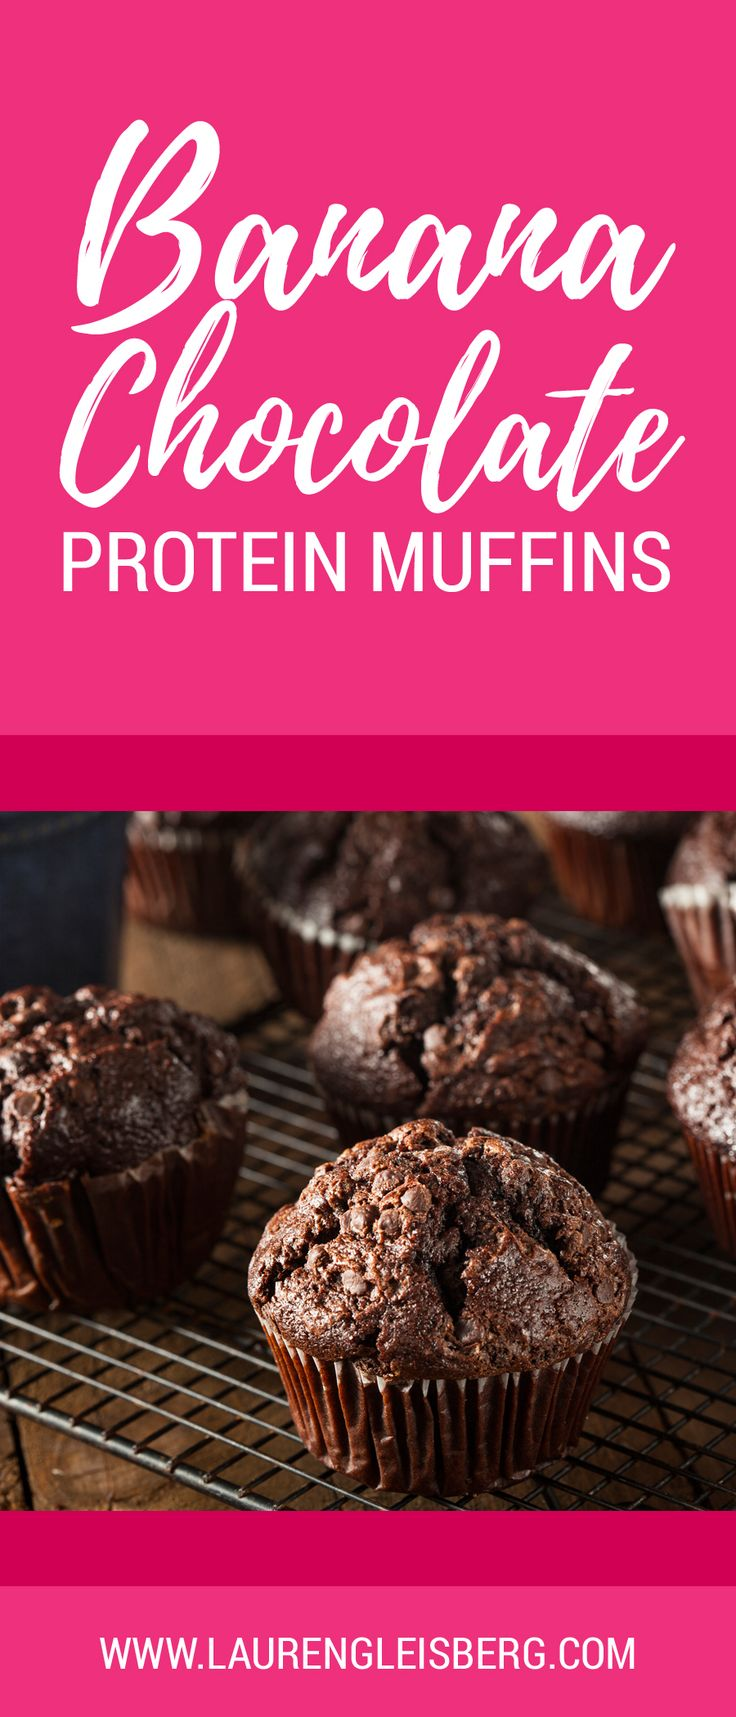 CHOCOLATE PROTEIN MUFFINS RECIPE – Lauren Gleisberg                                                                                                                                                                                 More